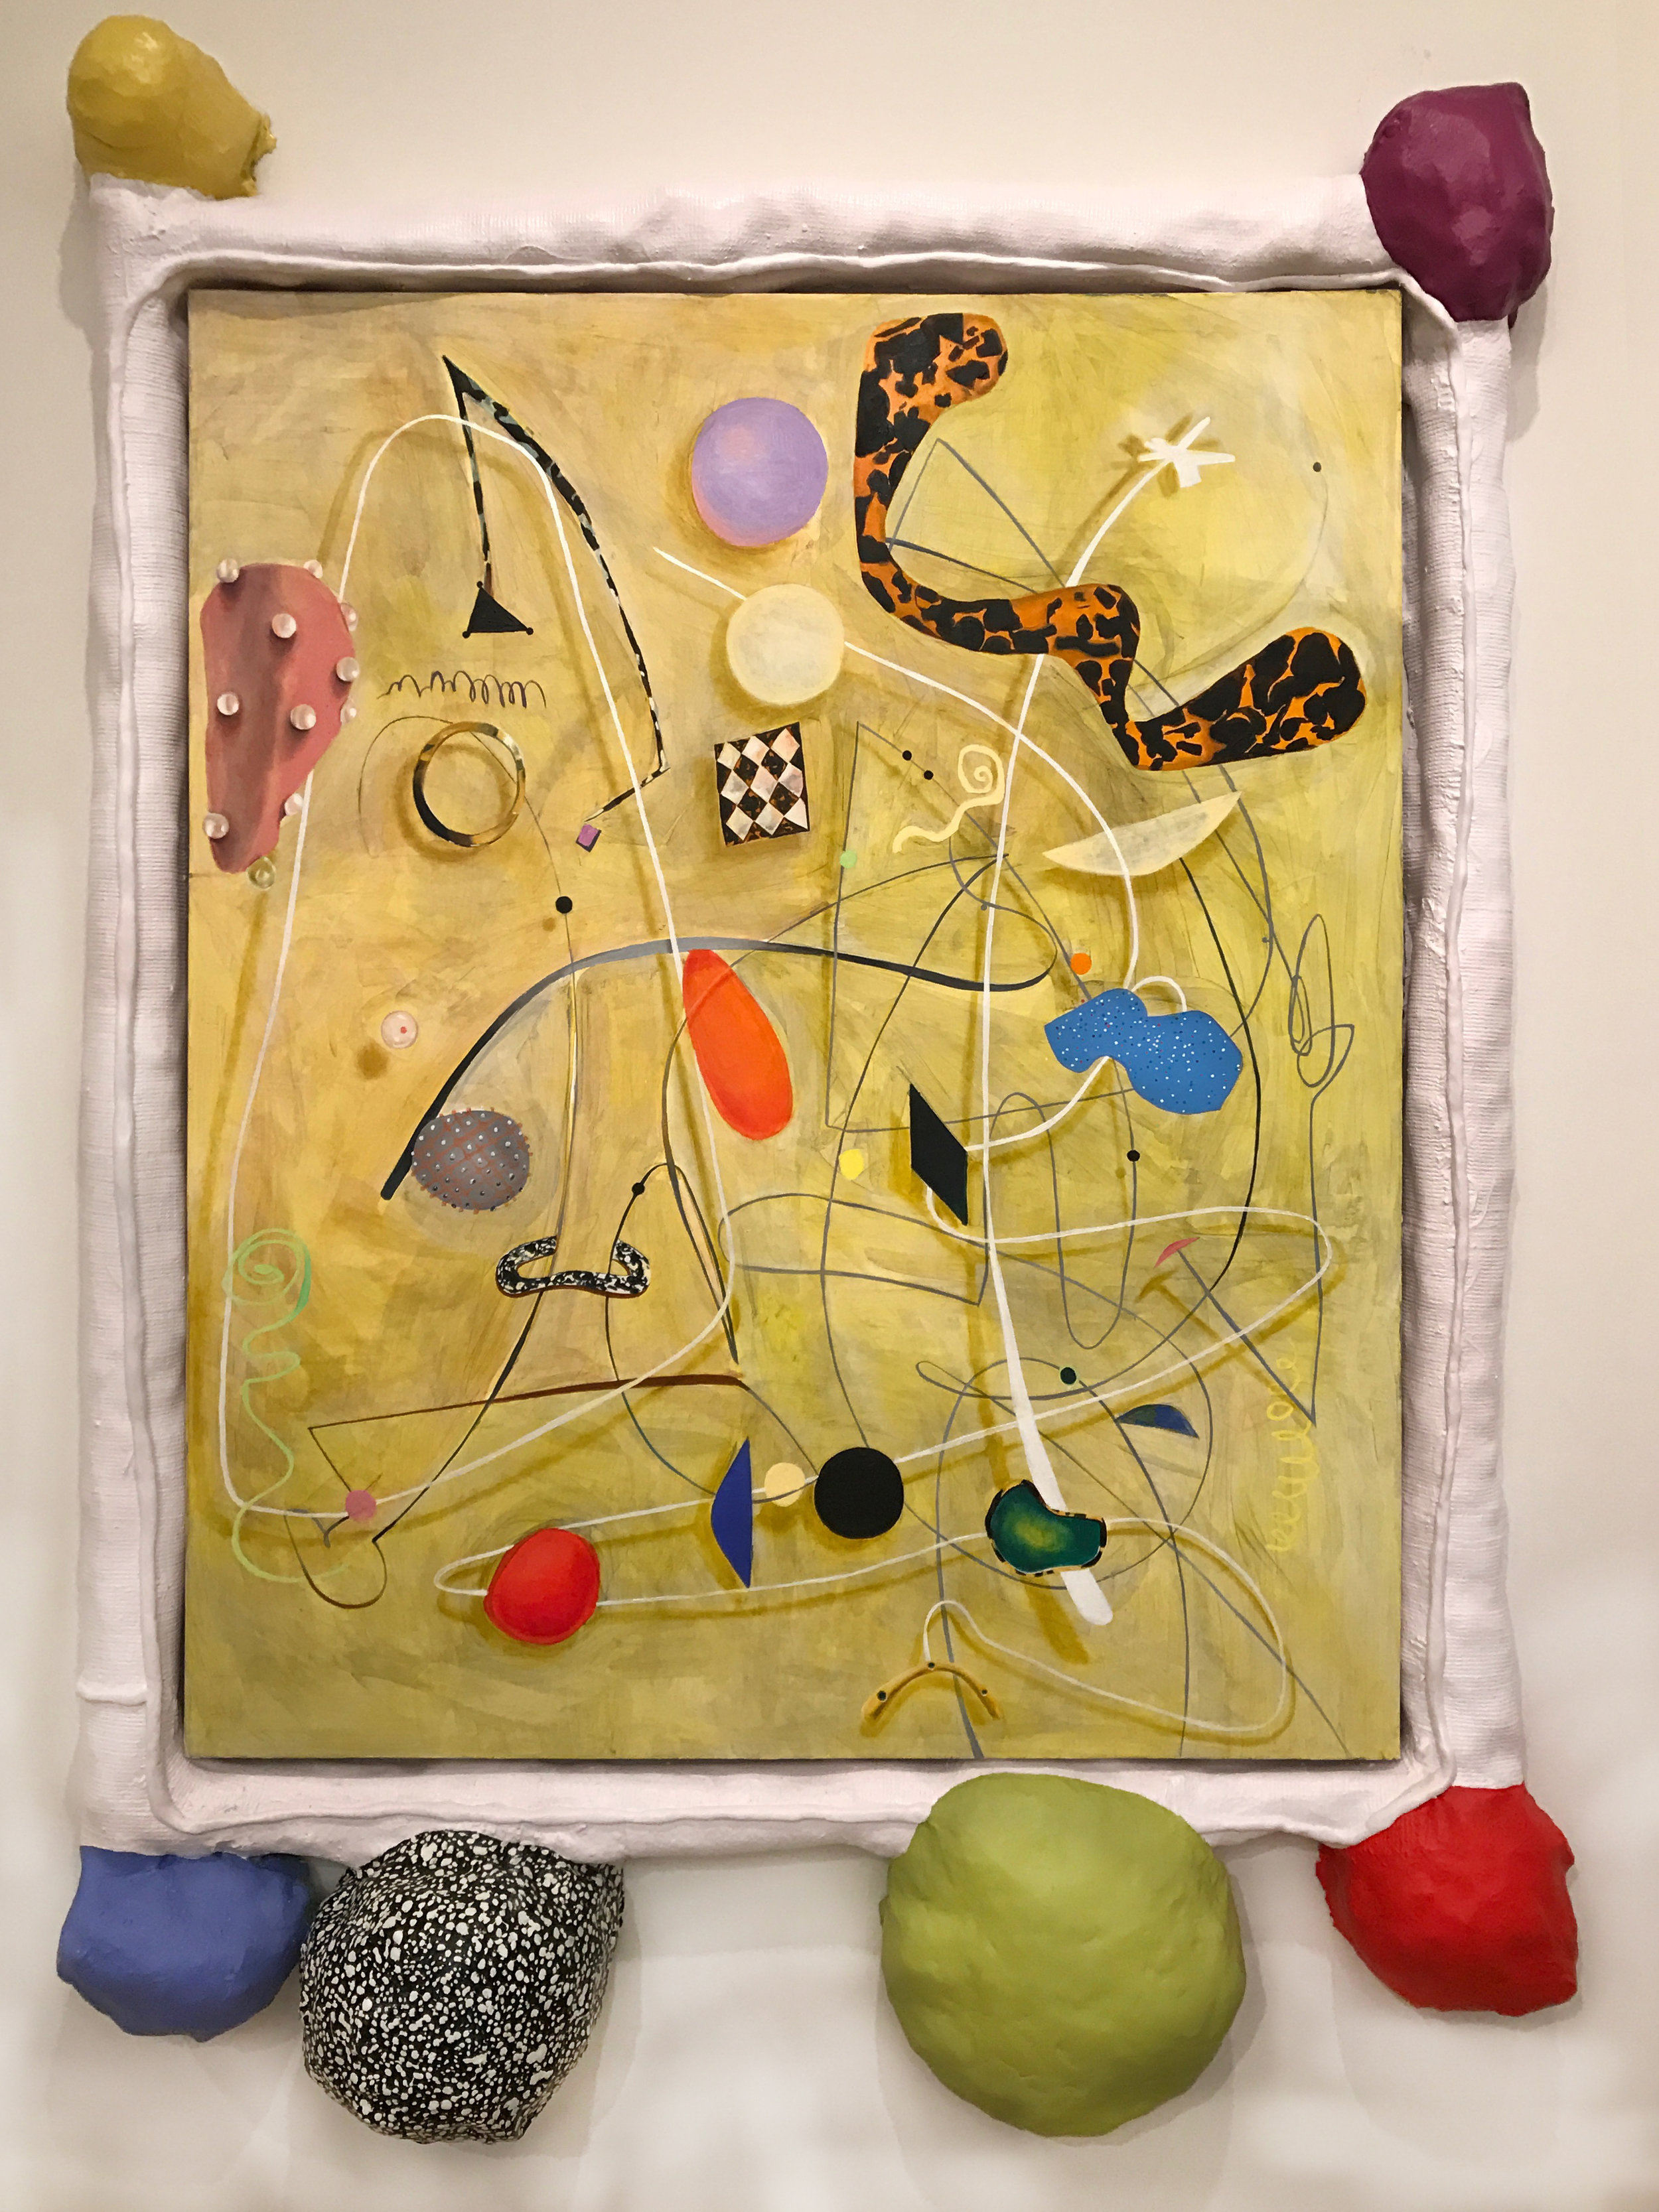 A Lived Thing II  oil, acrylic paint, foam, plaster, fiberglass, Apoxie Sculpt, canvas 70 x 68 x 5 in